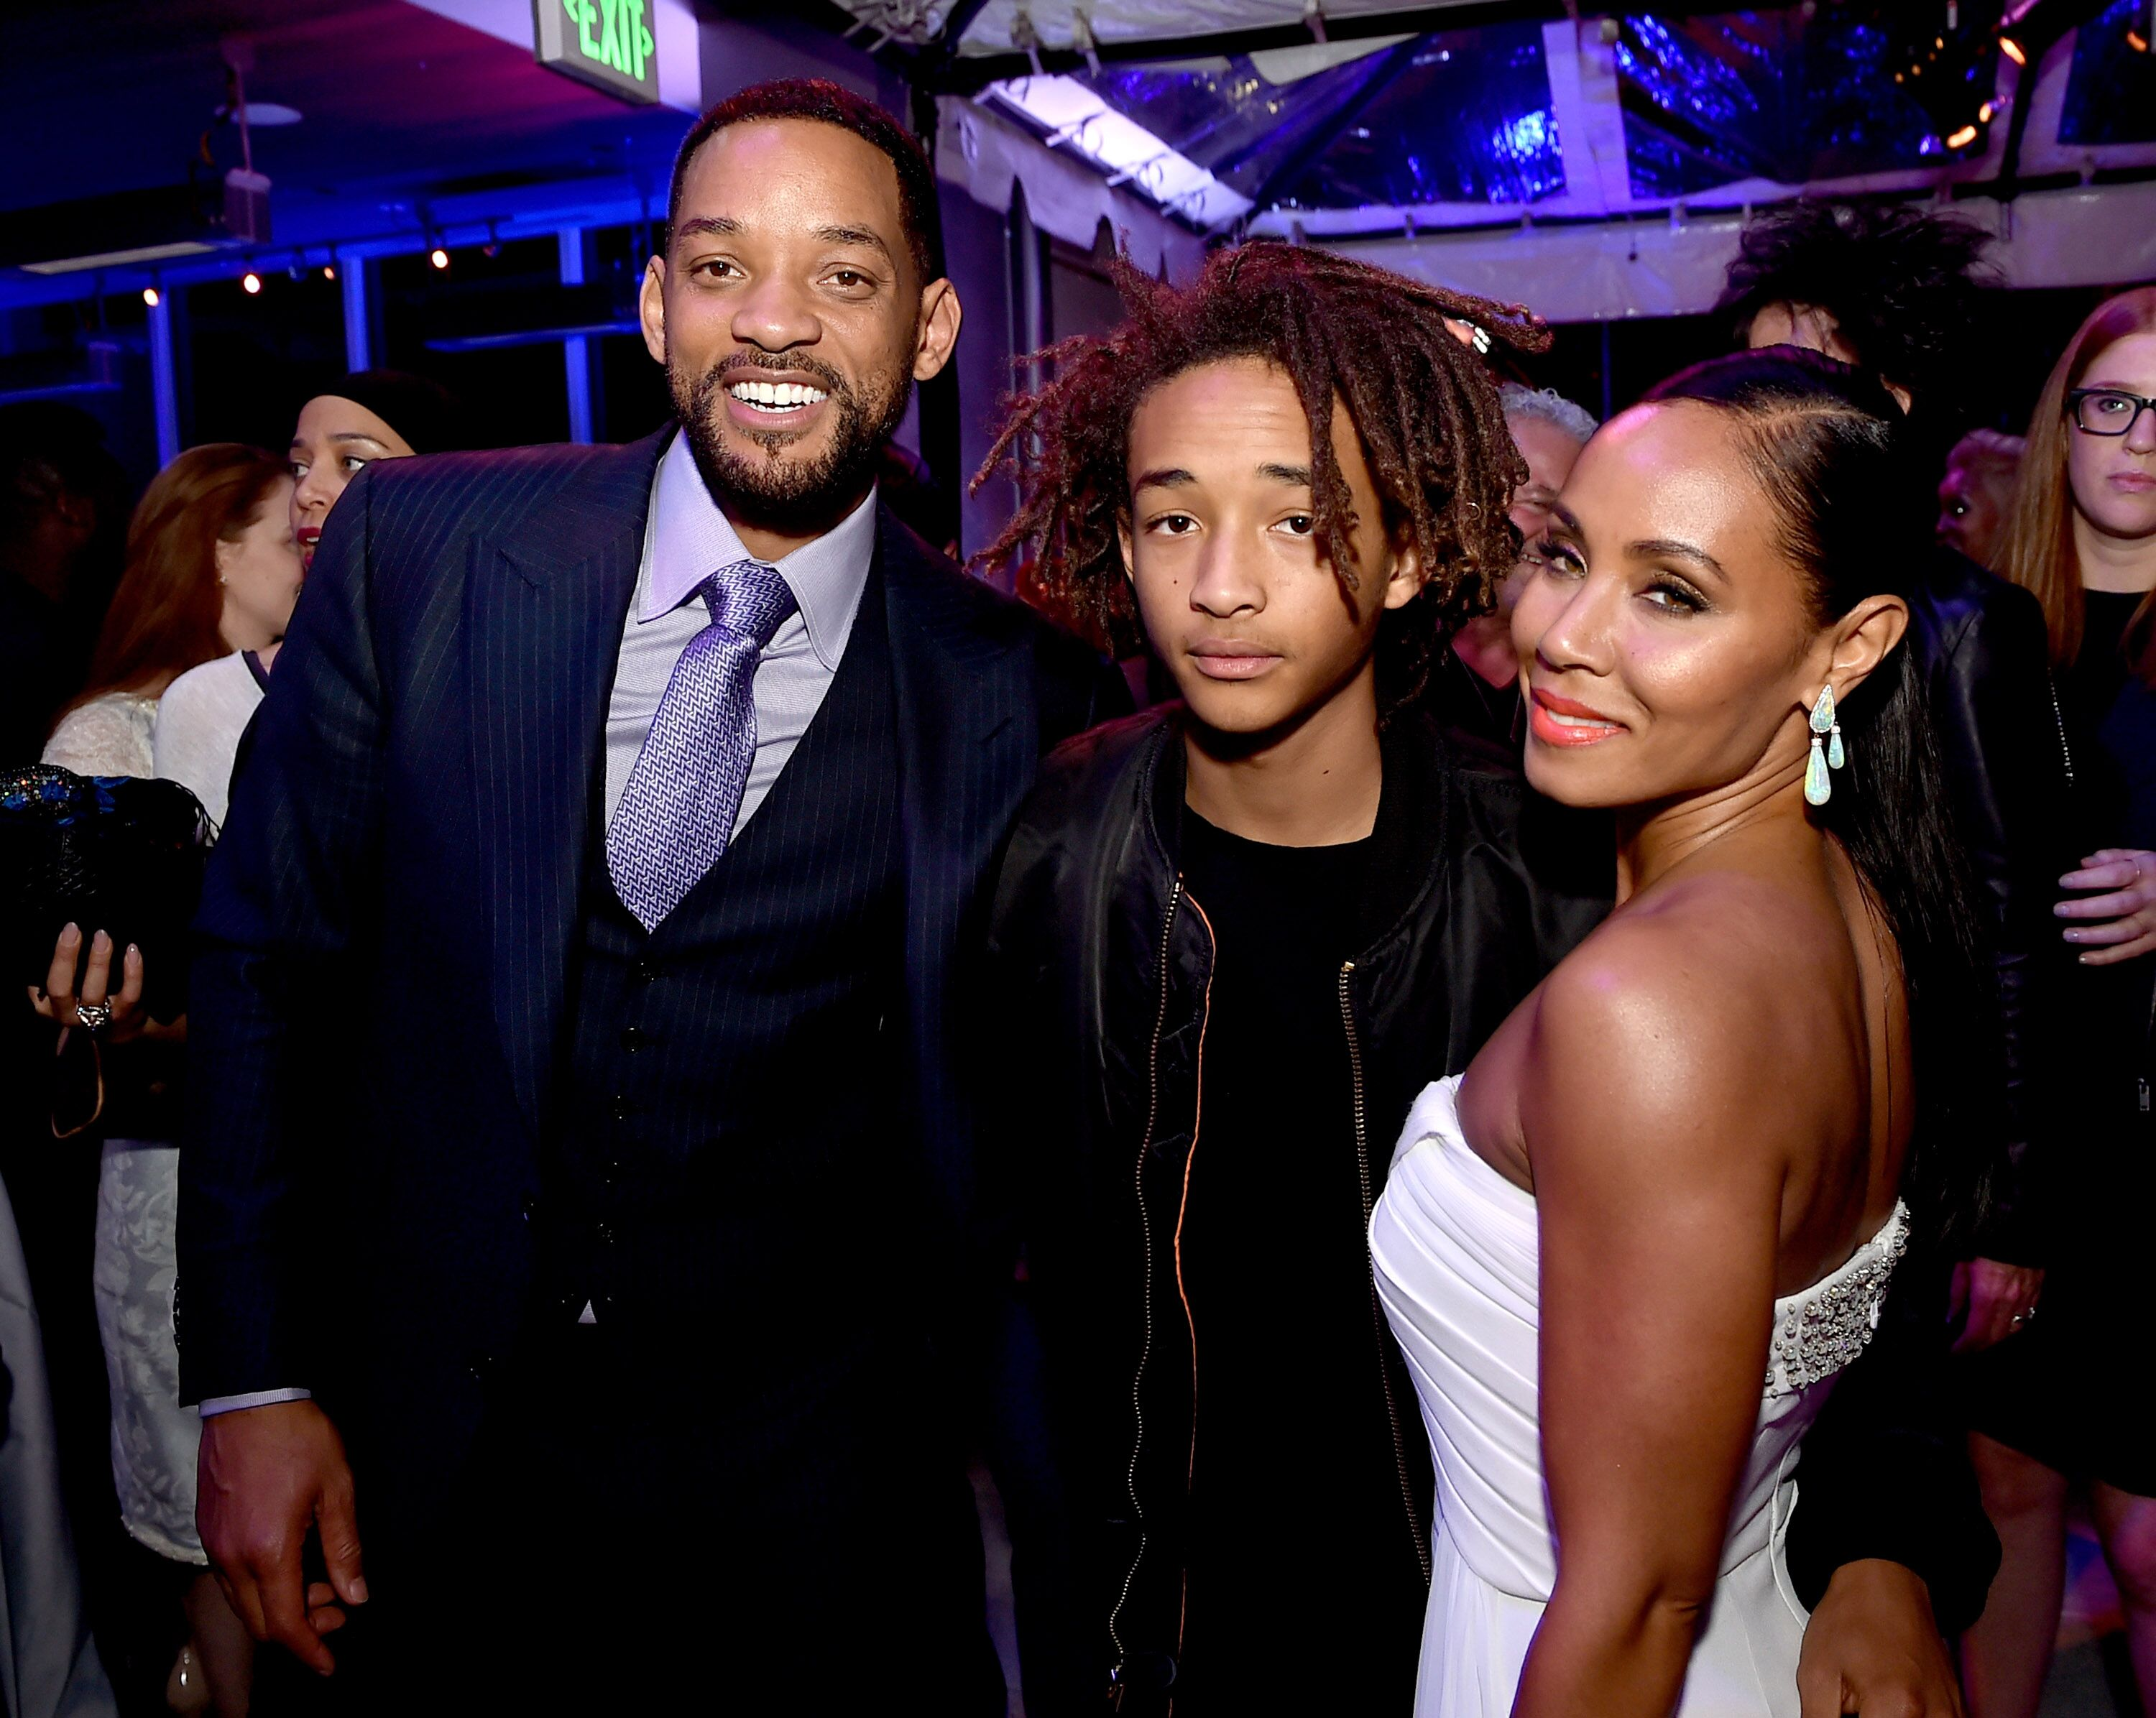 Jada Pinkett Smith and Will Smith celebrate son Jaden's birthday/ Source: Getty Images